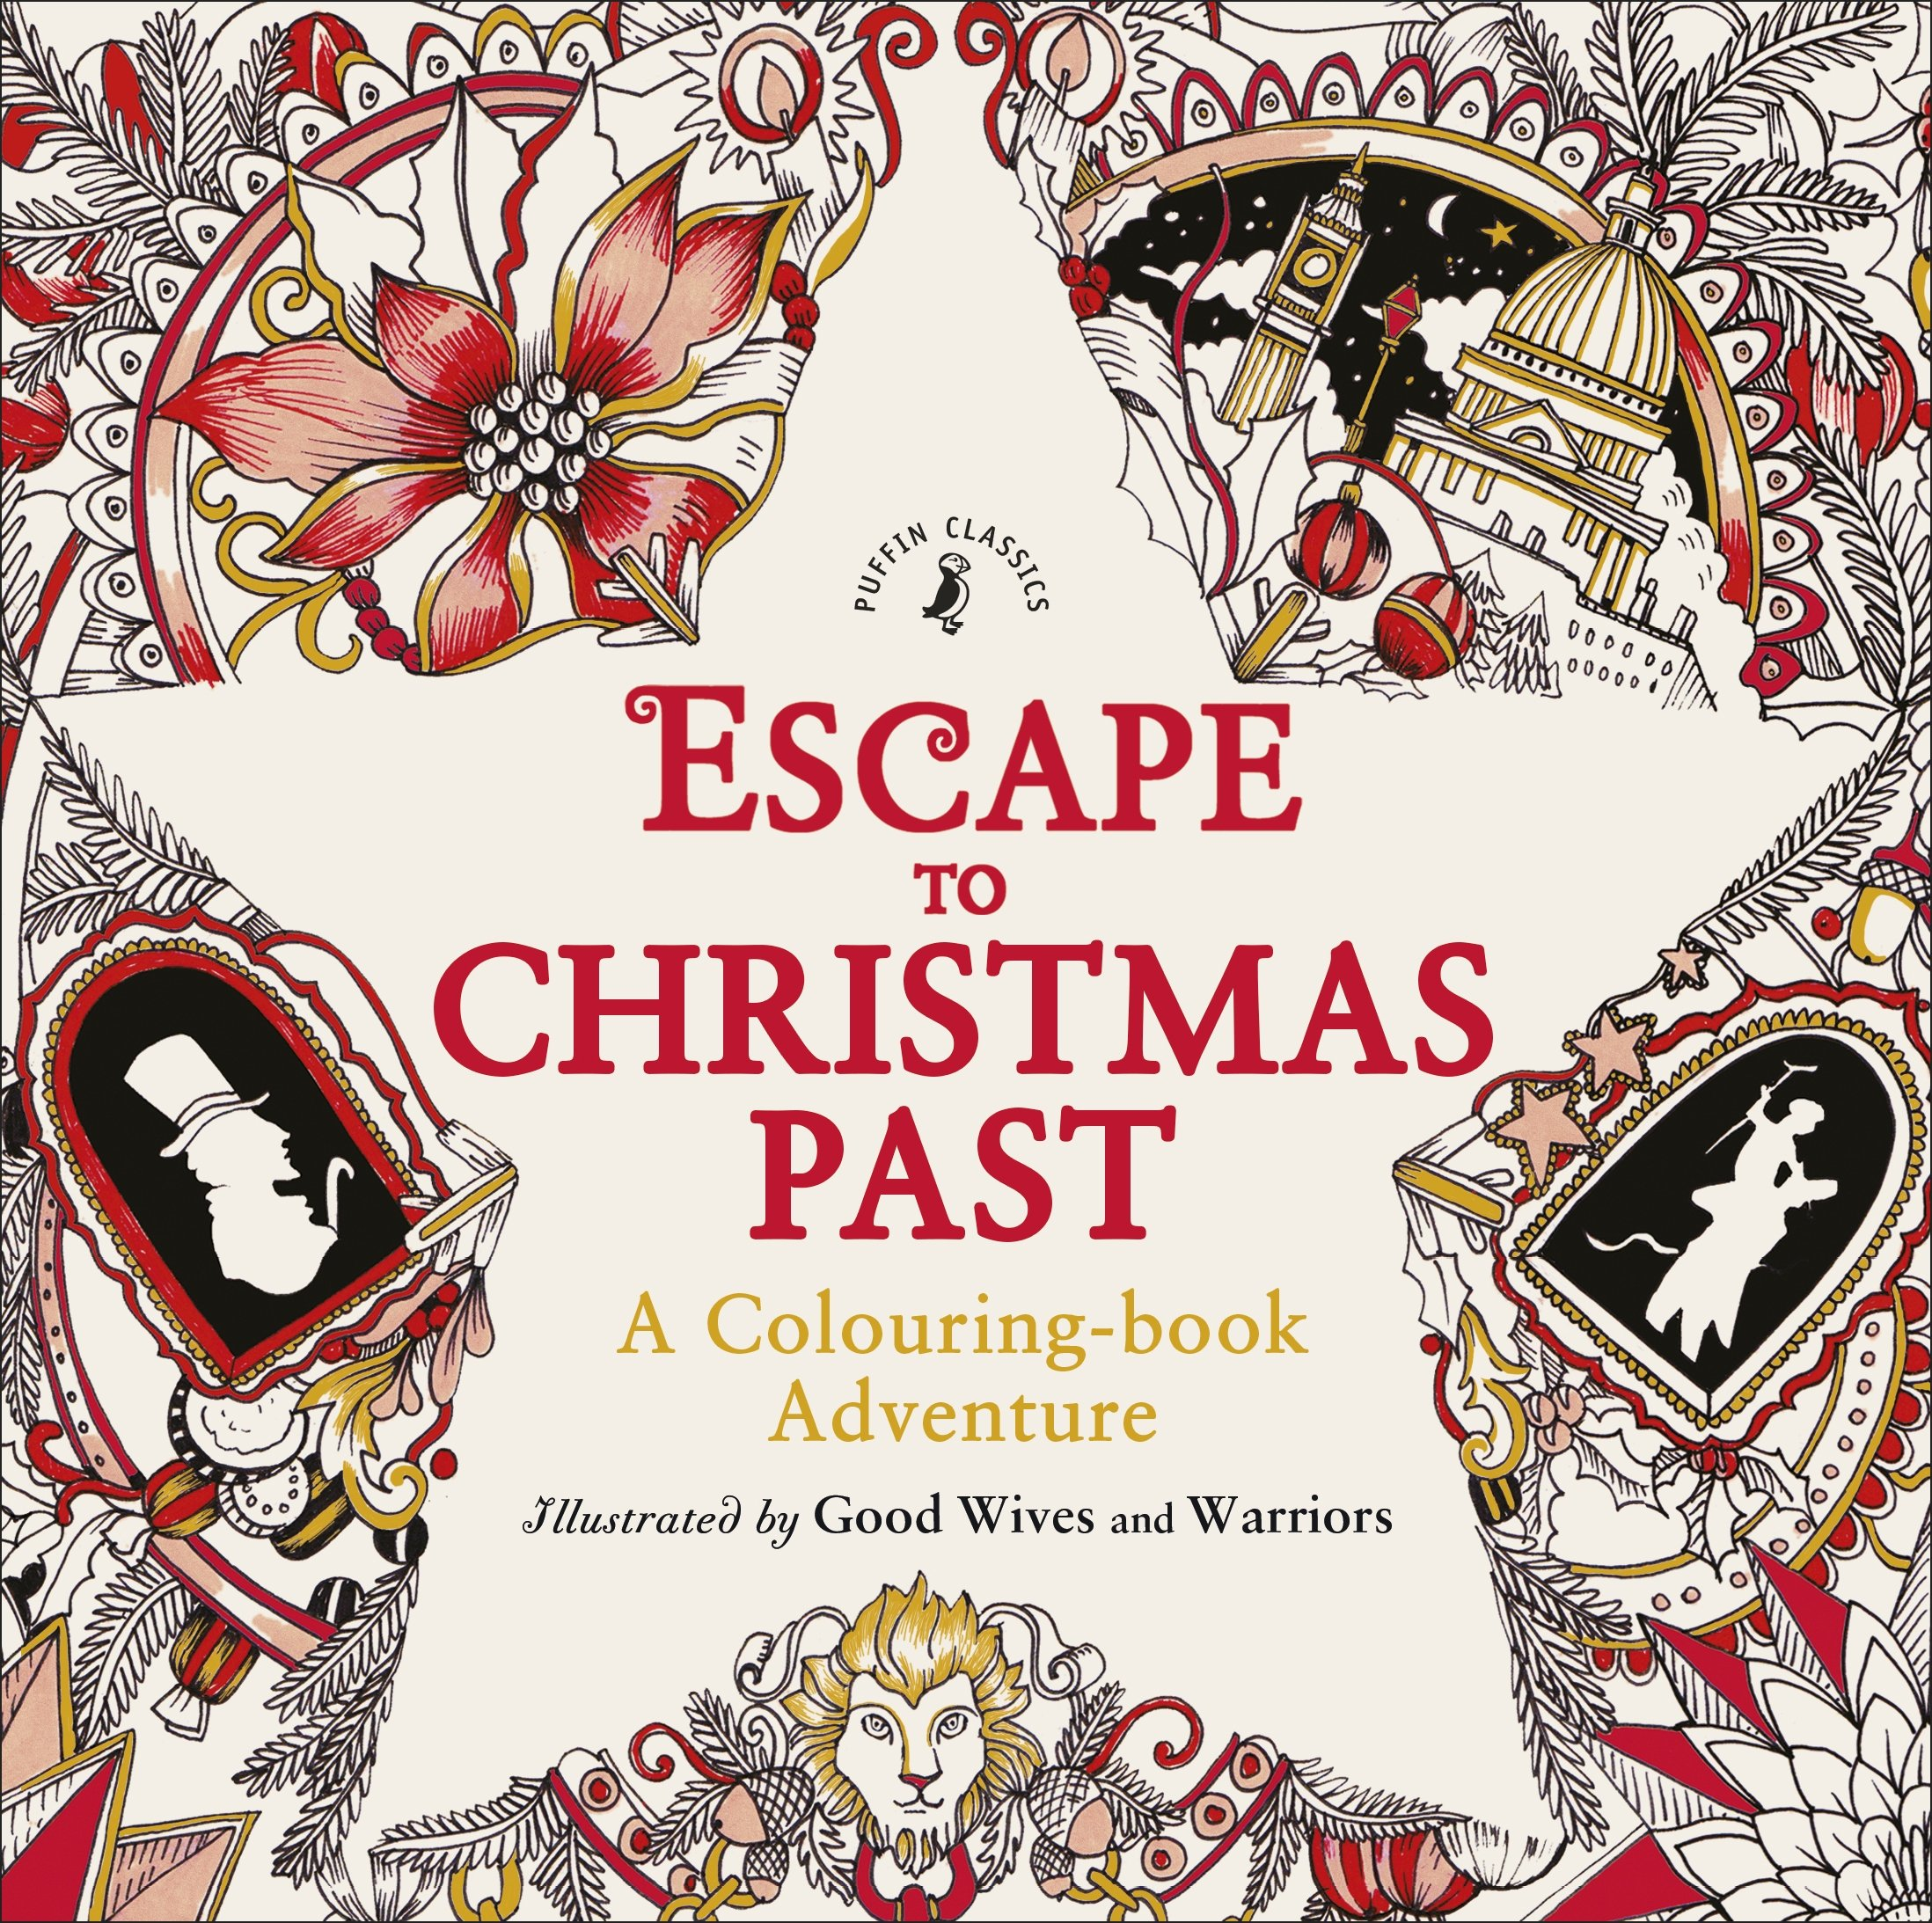 http://www.amazon.it/Escape-Christmas-Past-Colouring-Adventure/dp/0141366761/ref=sr_1_40?s=english-books&ie=UTF8&qid=1450276994&sr=1-40&keywords=colouring+book